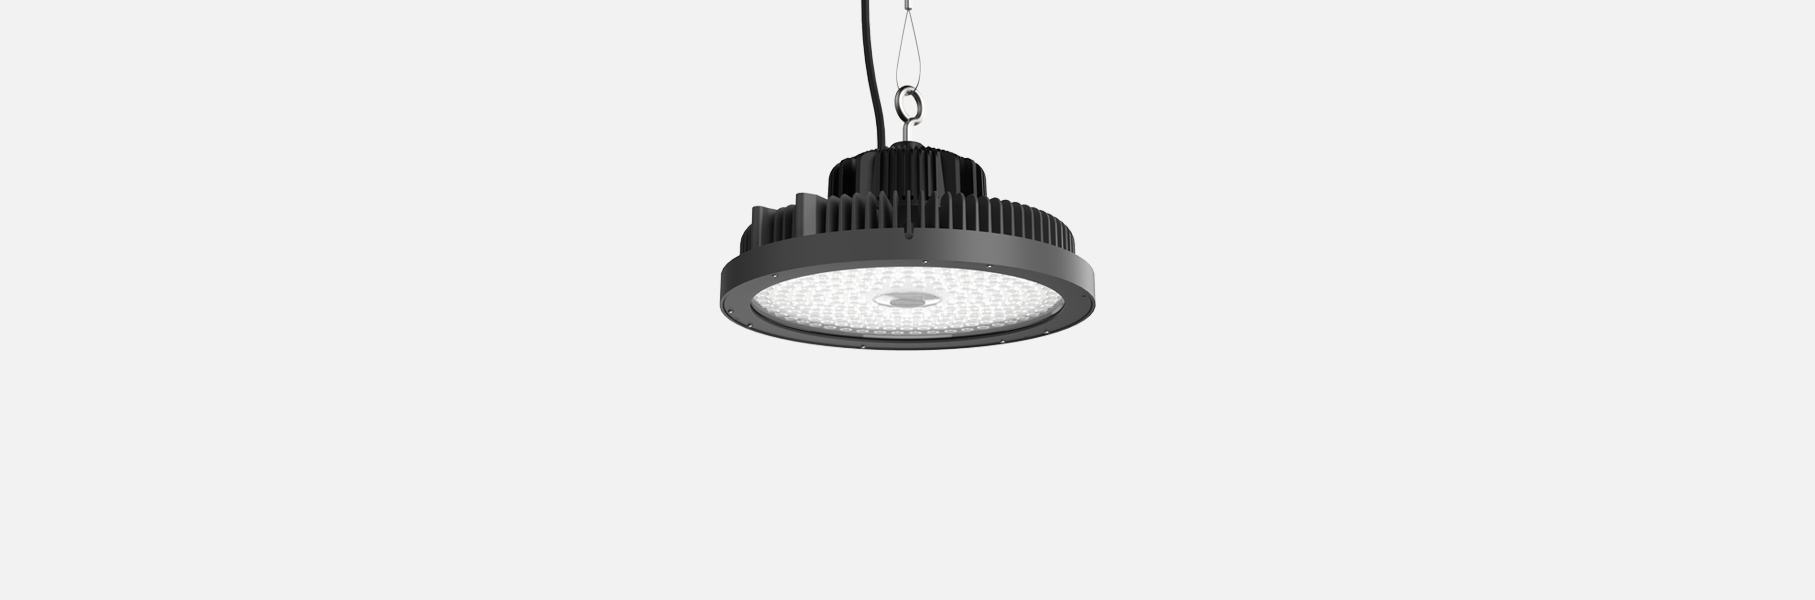 T1 led suspension for indoor and outdoor lighting lanzini mozeypictures Images